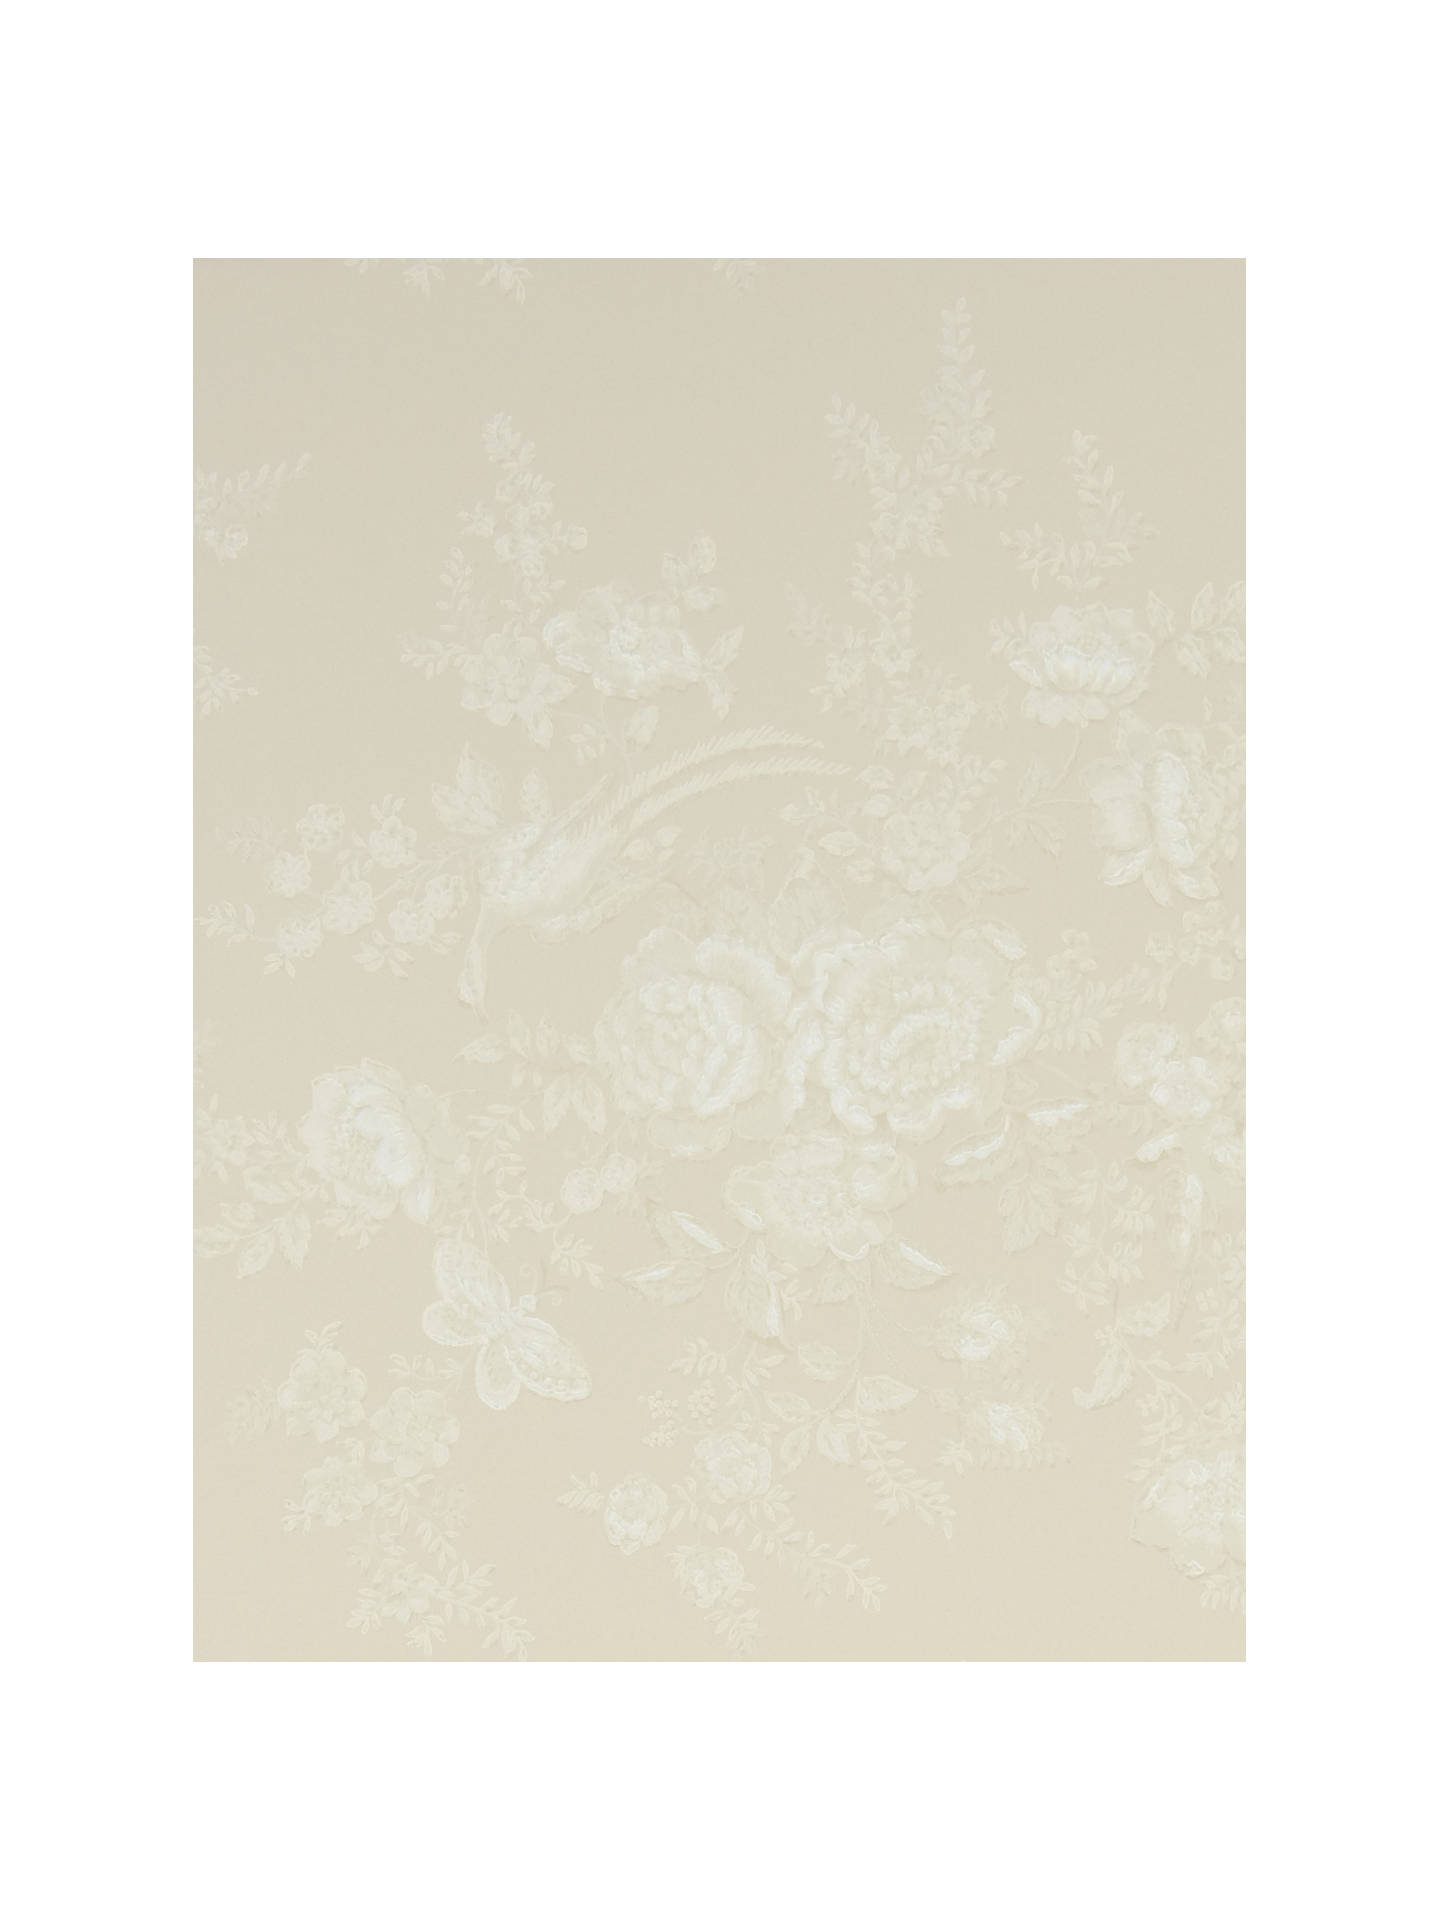 Buy Ralph Lauren Vintage Dauphine Wallpaper, Alabaster PRL028/02 Online at johnlewis.com